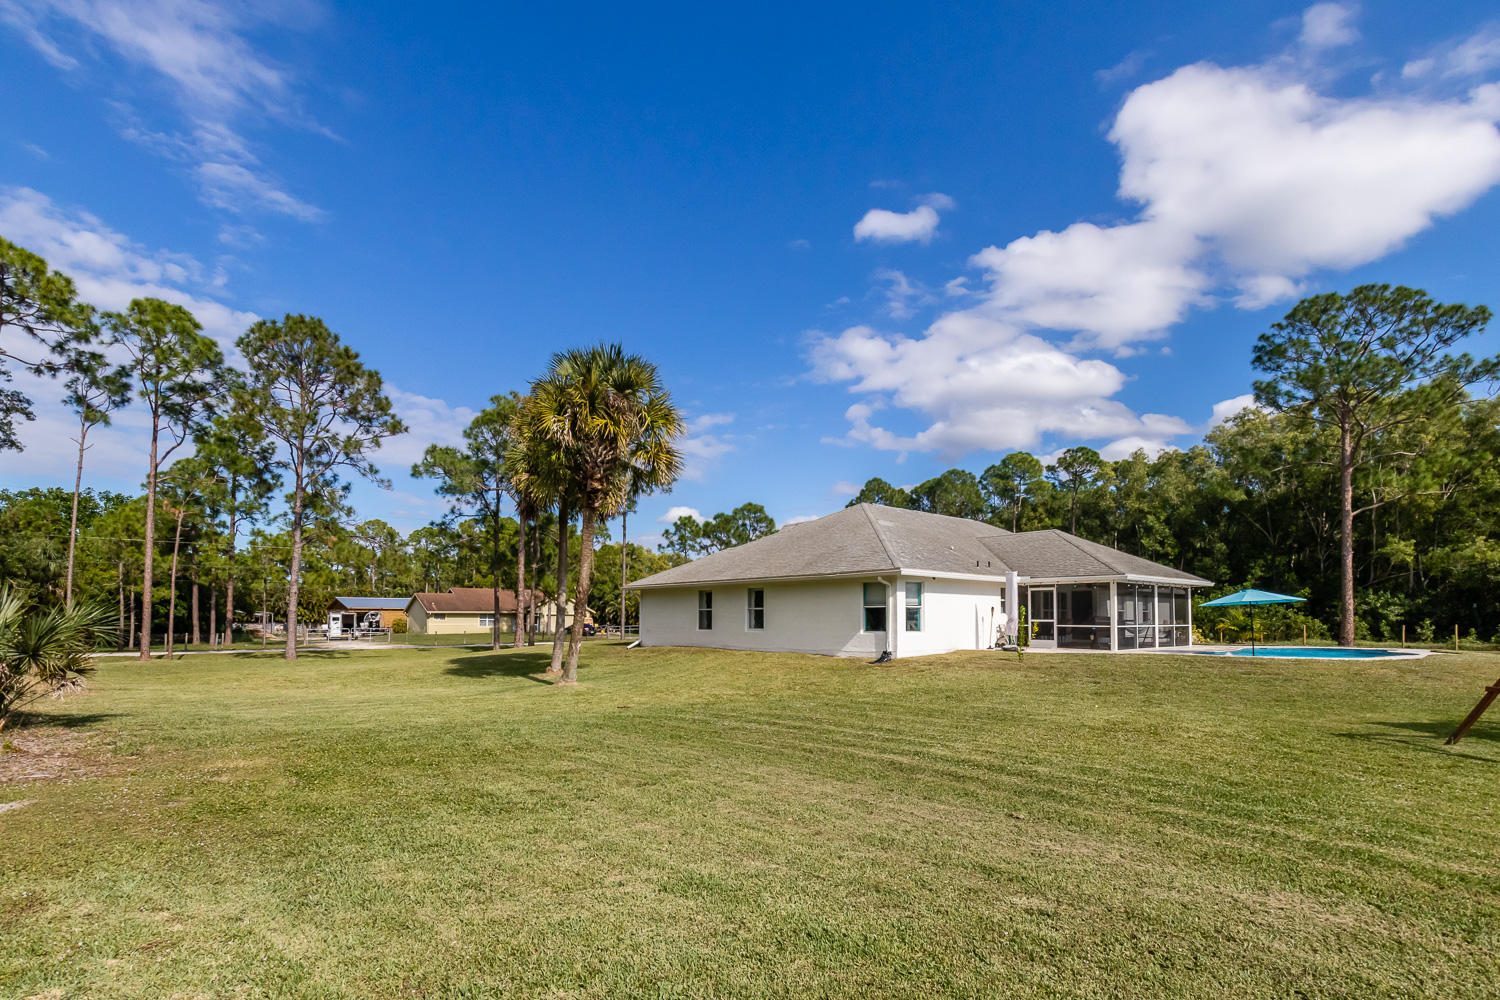 18798 90th Street The Acreage, FL 33470 small photo 50